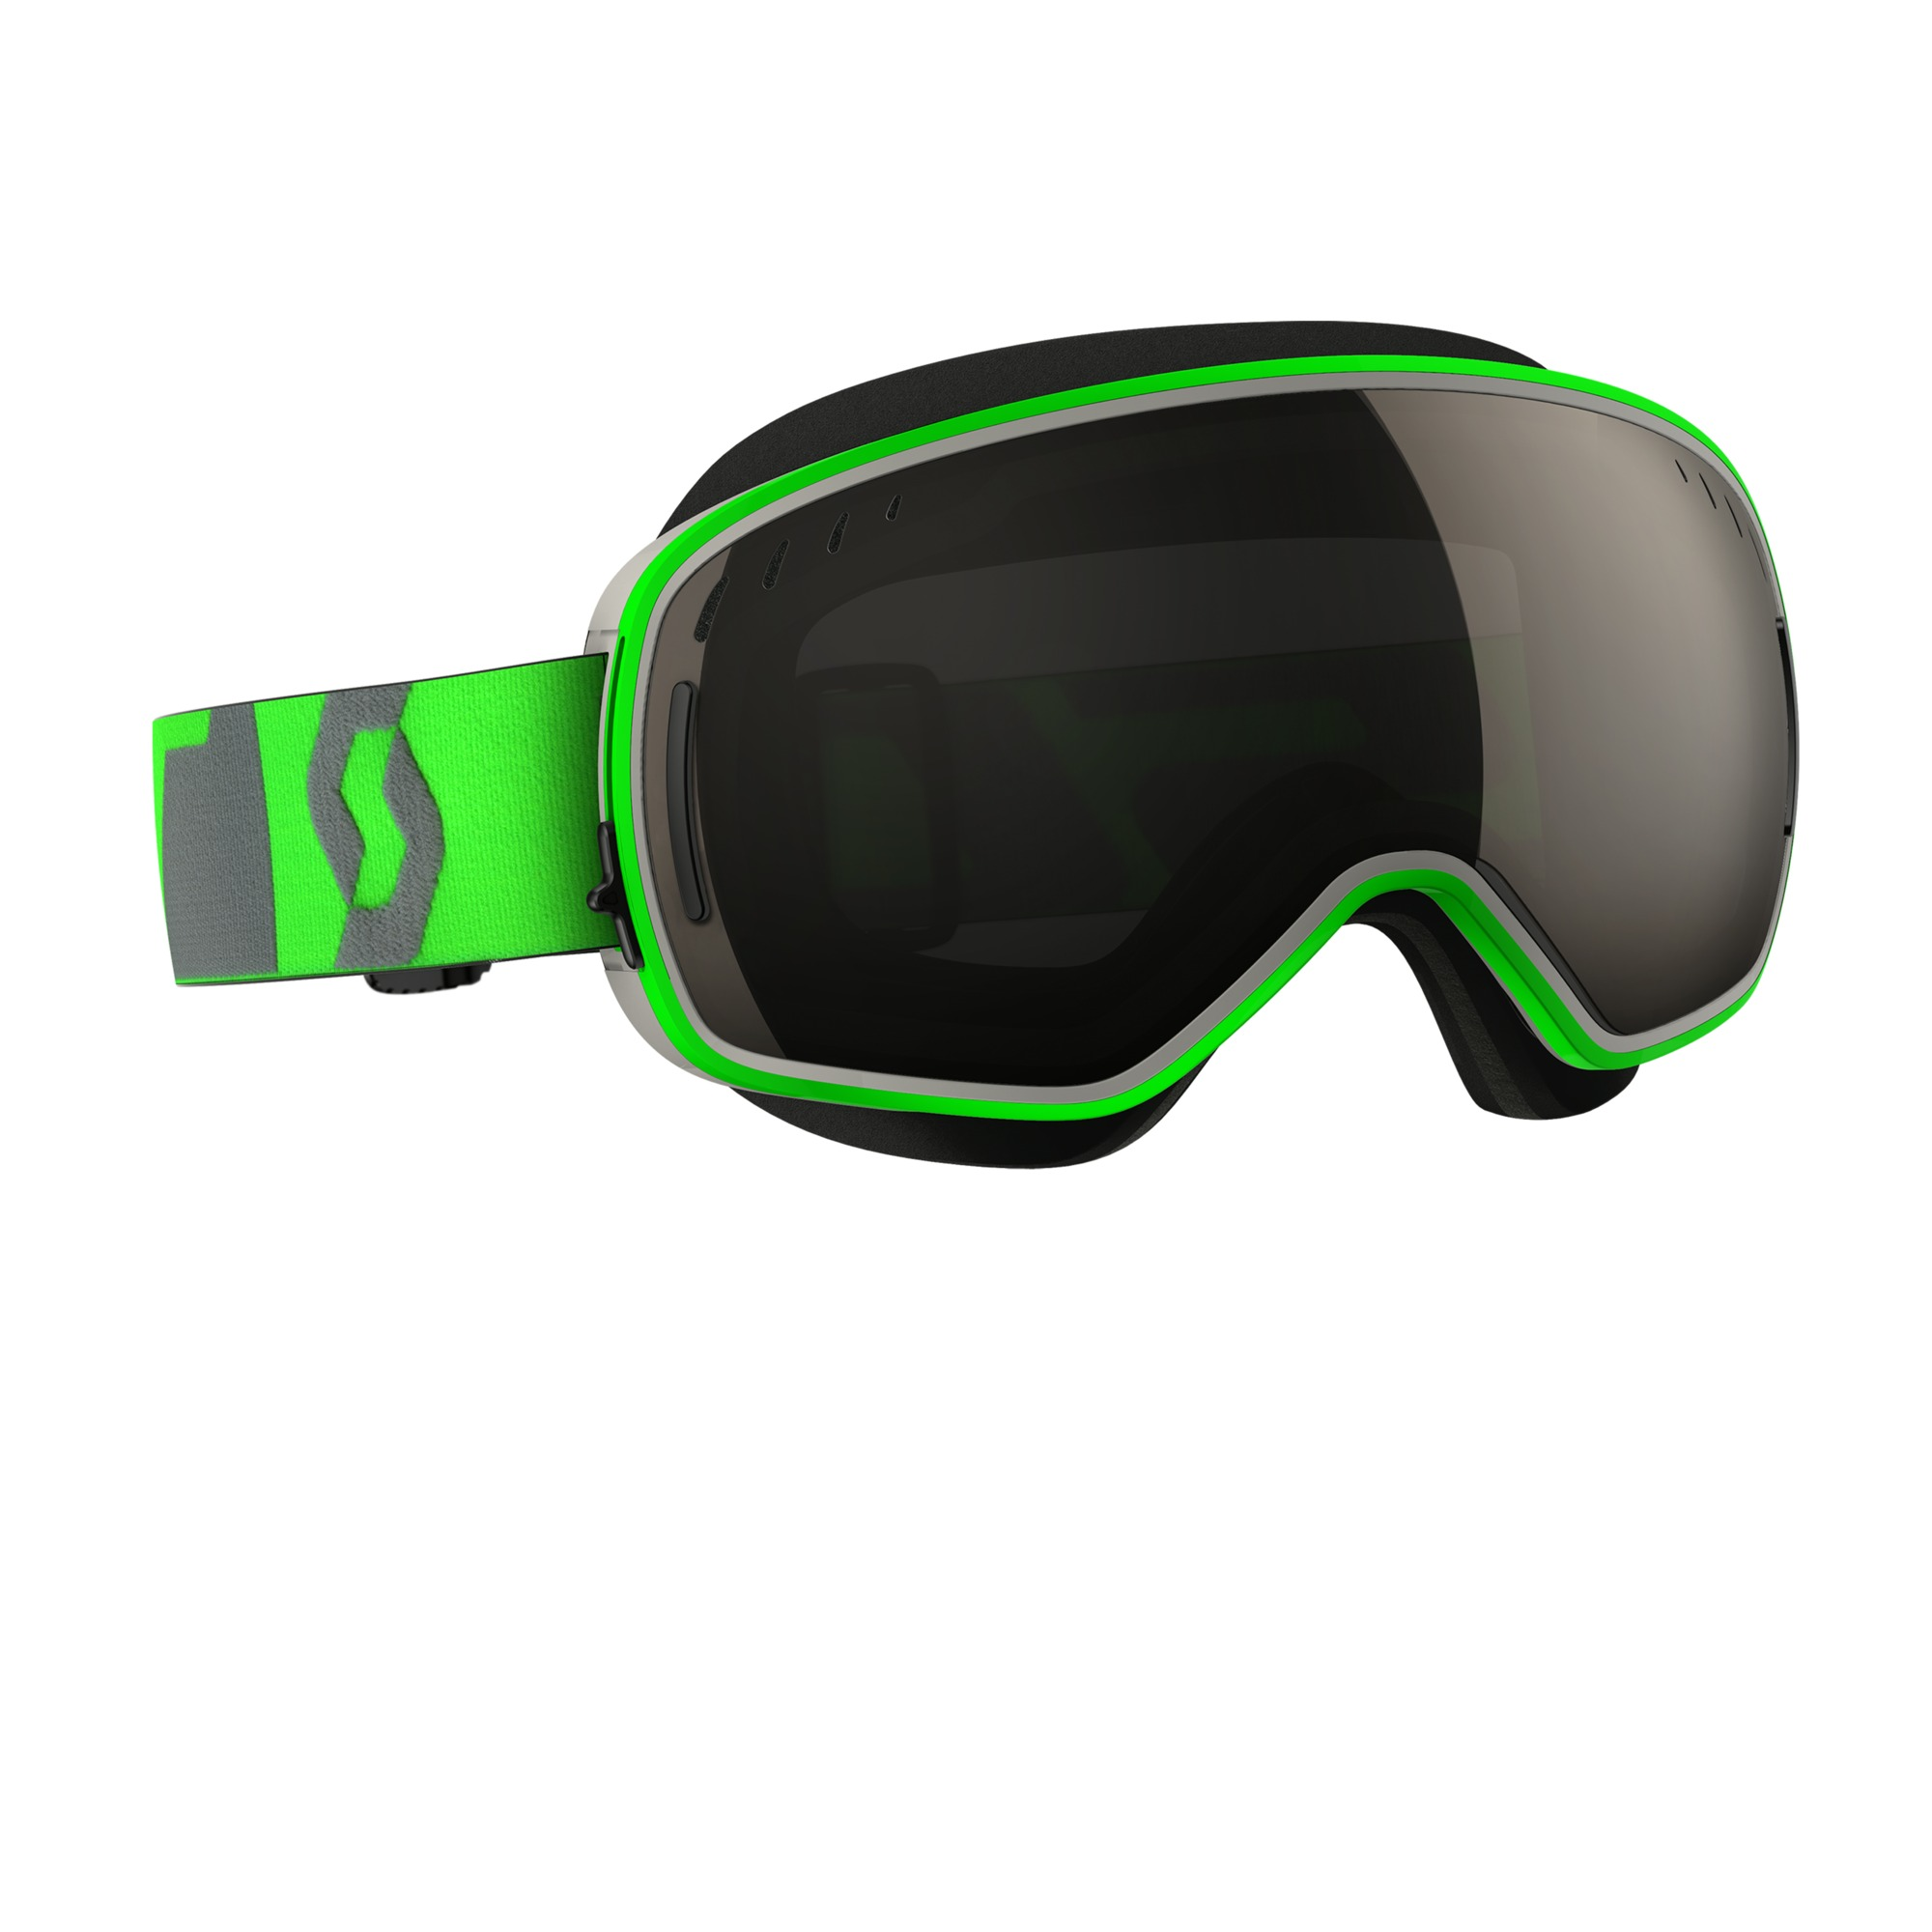 Snowmobile Goggles Overview